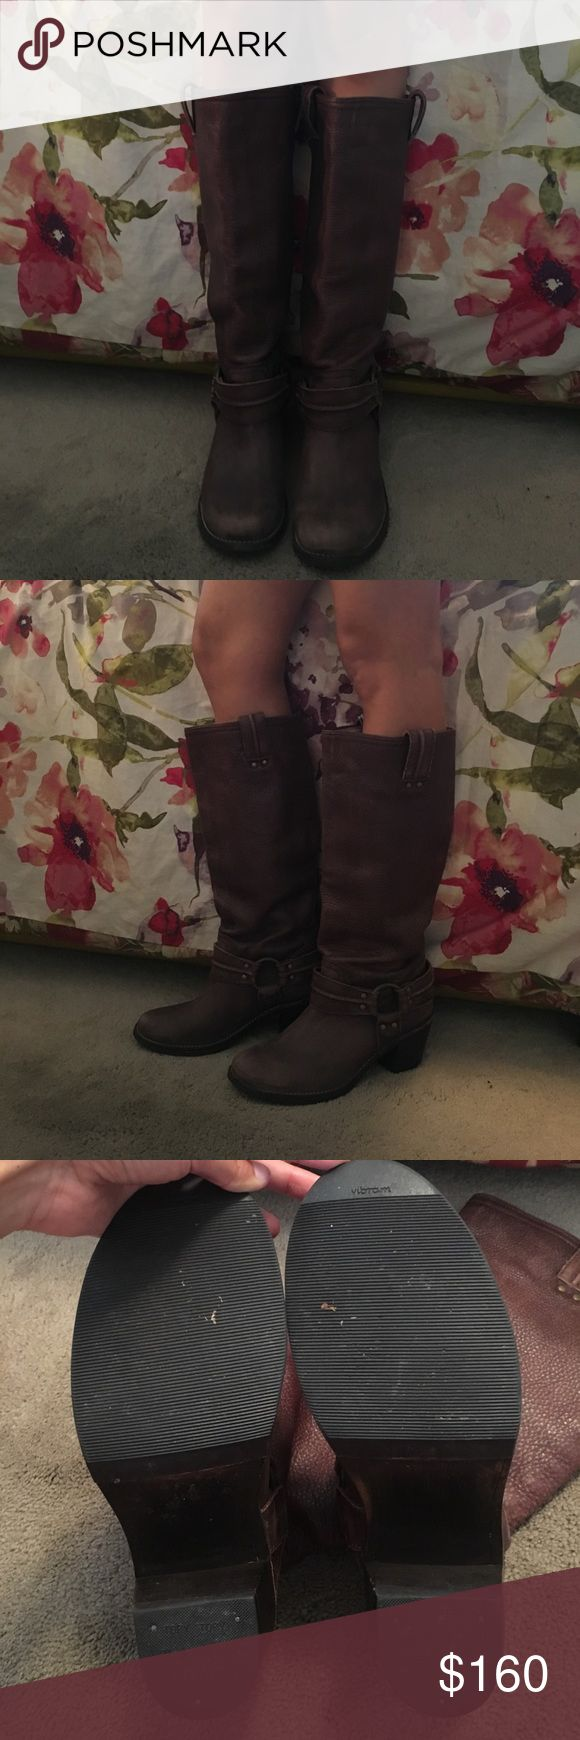 "Frye Harness Boots Brown leather boots with stylish buckle design. 1 3/4"" inch heel. Only worn once so practically in new condition. Frye Shoes Heeled Boots"